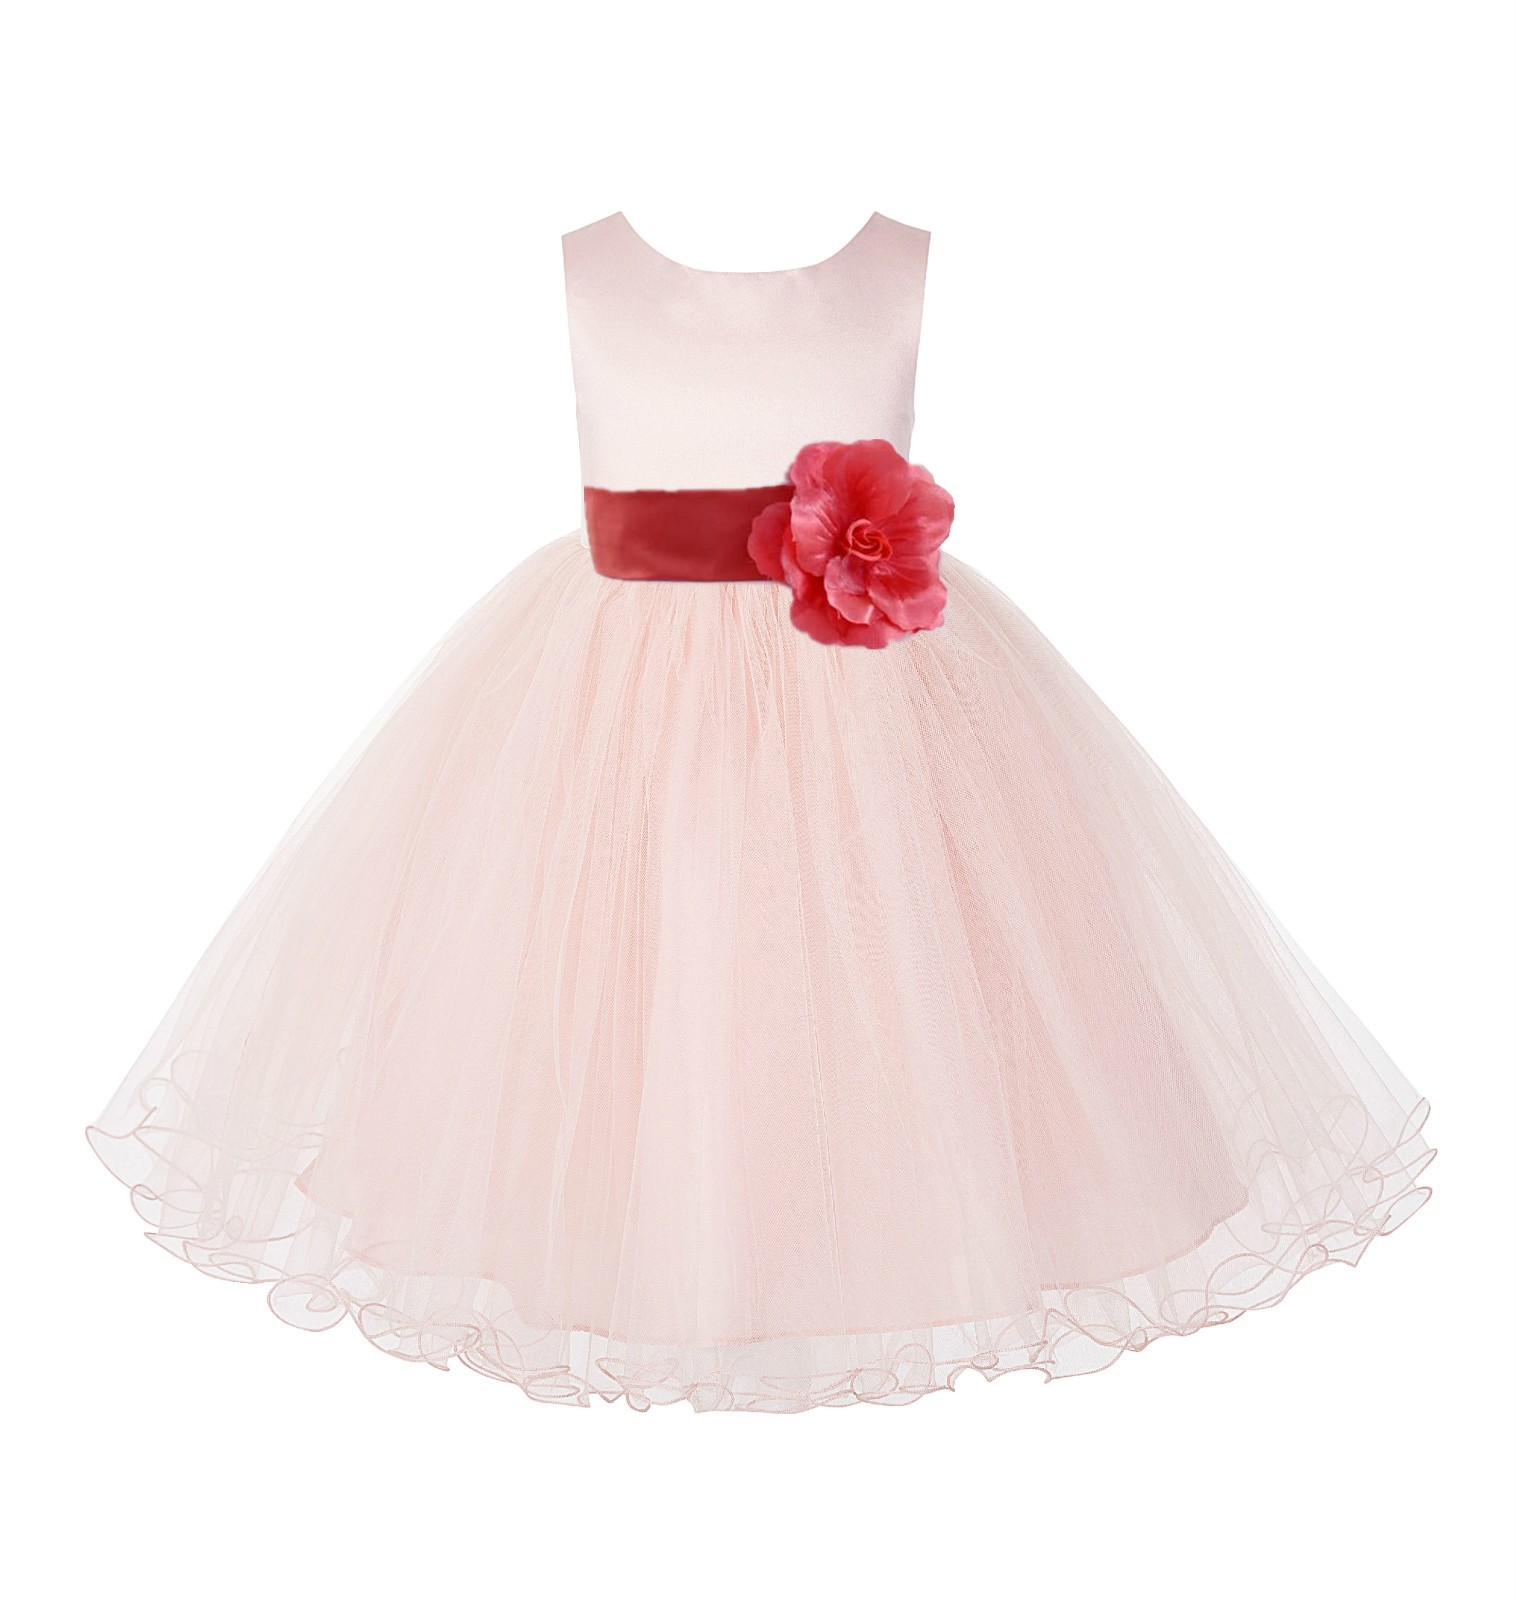 Blush Pink / Guava Tulle Rattail Edge Flower Girl Dress Pageant Recital 829S